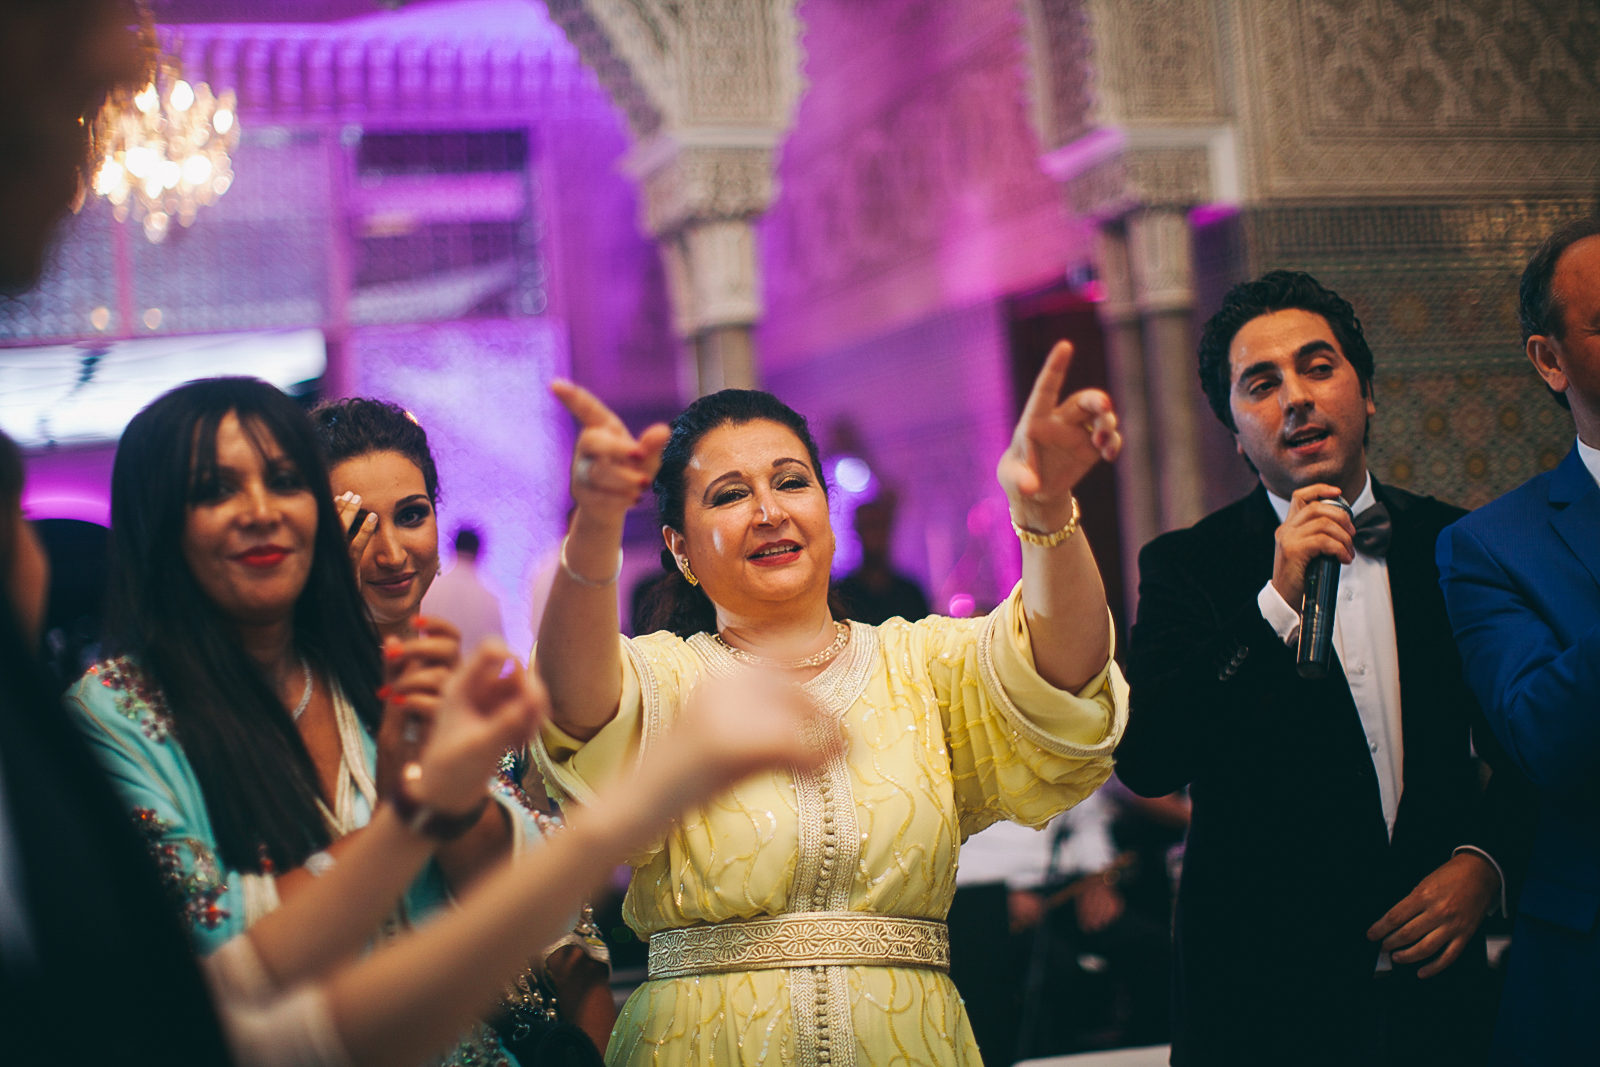 traditional_moroccan_wedding_photographry_casablanca_morocco_houda_vivek_ebony_siovhan_bokeh_photography_156.jpg